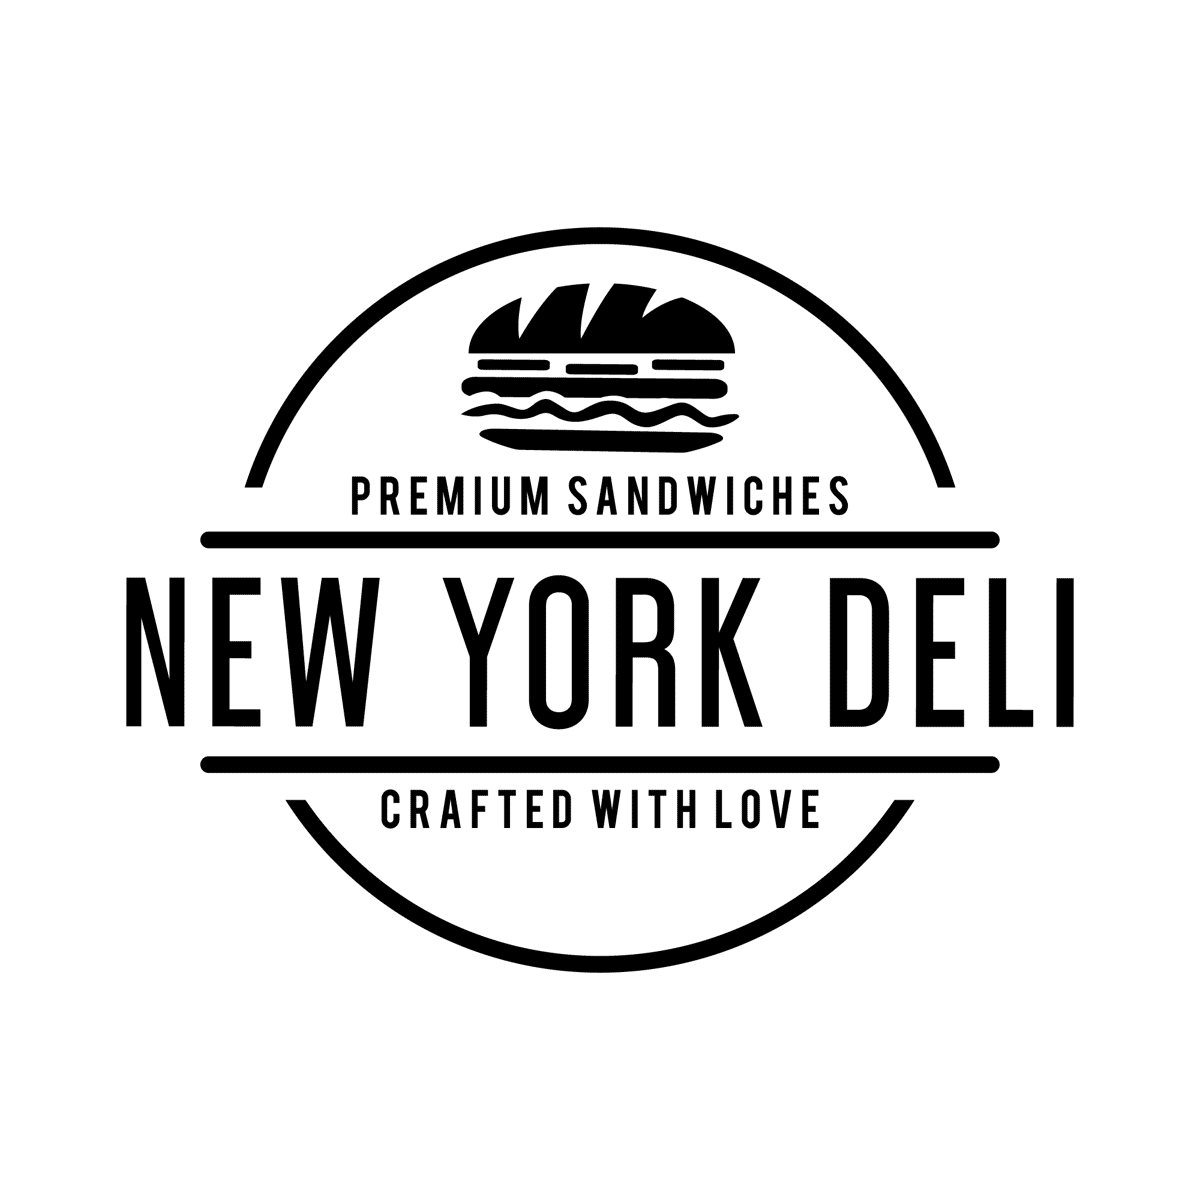 New York Deli logo